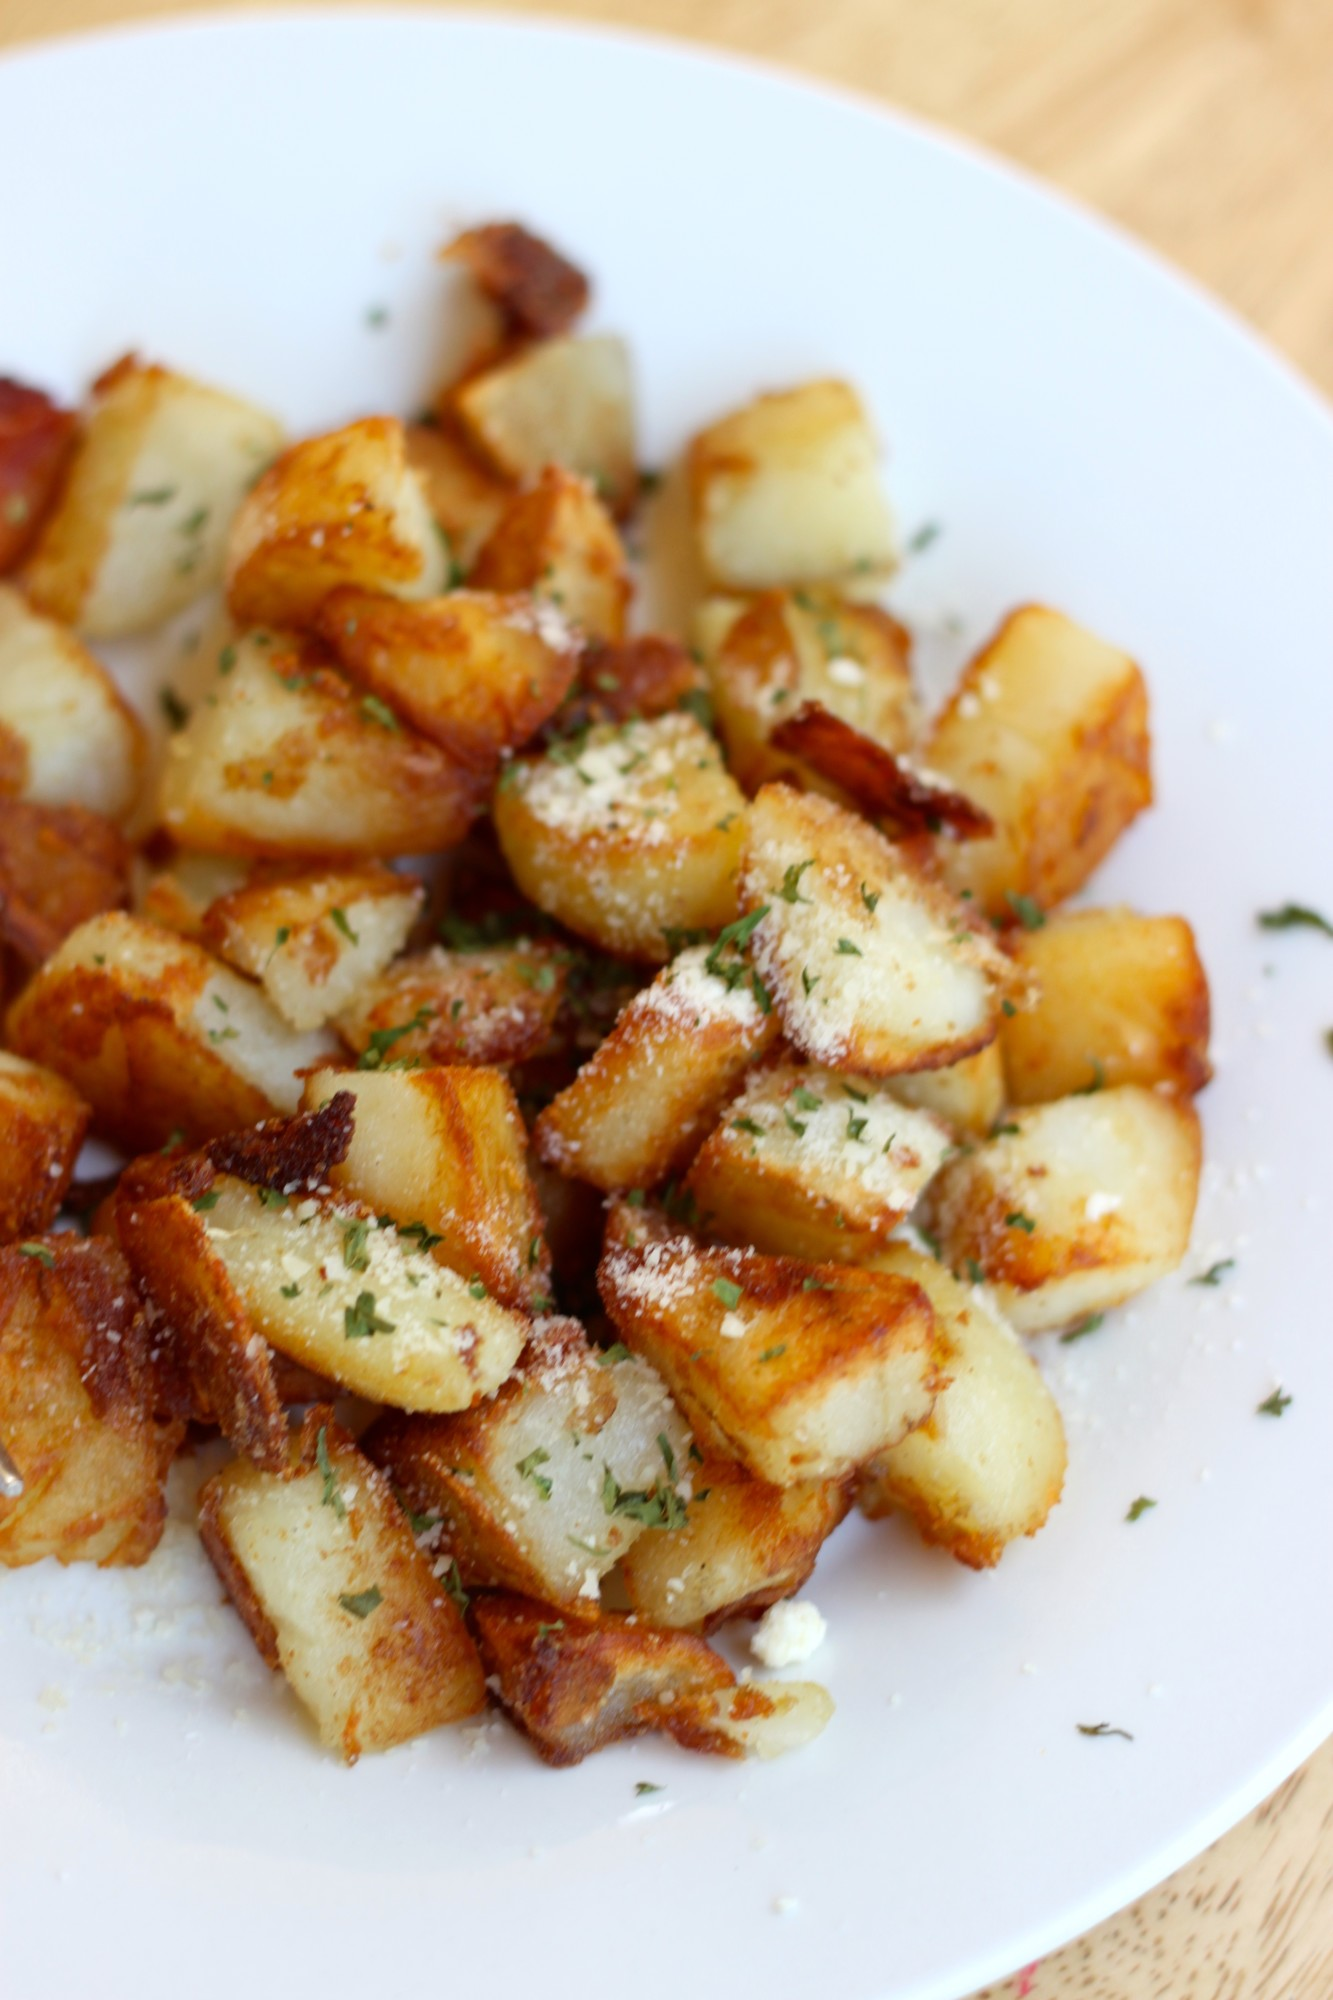 Potatoes frying pan recipes